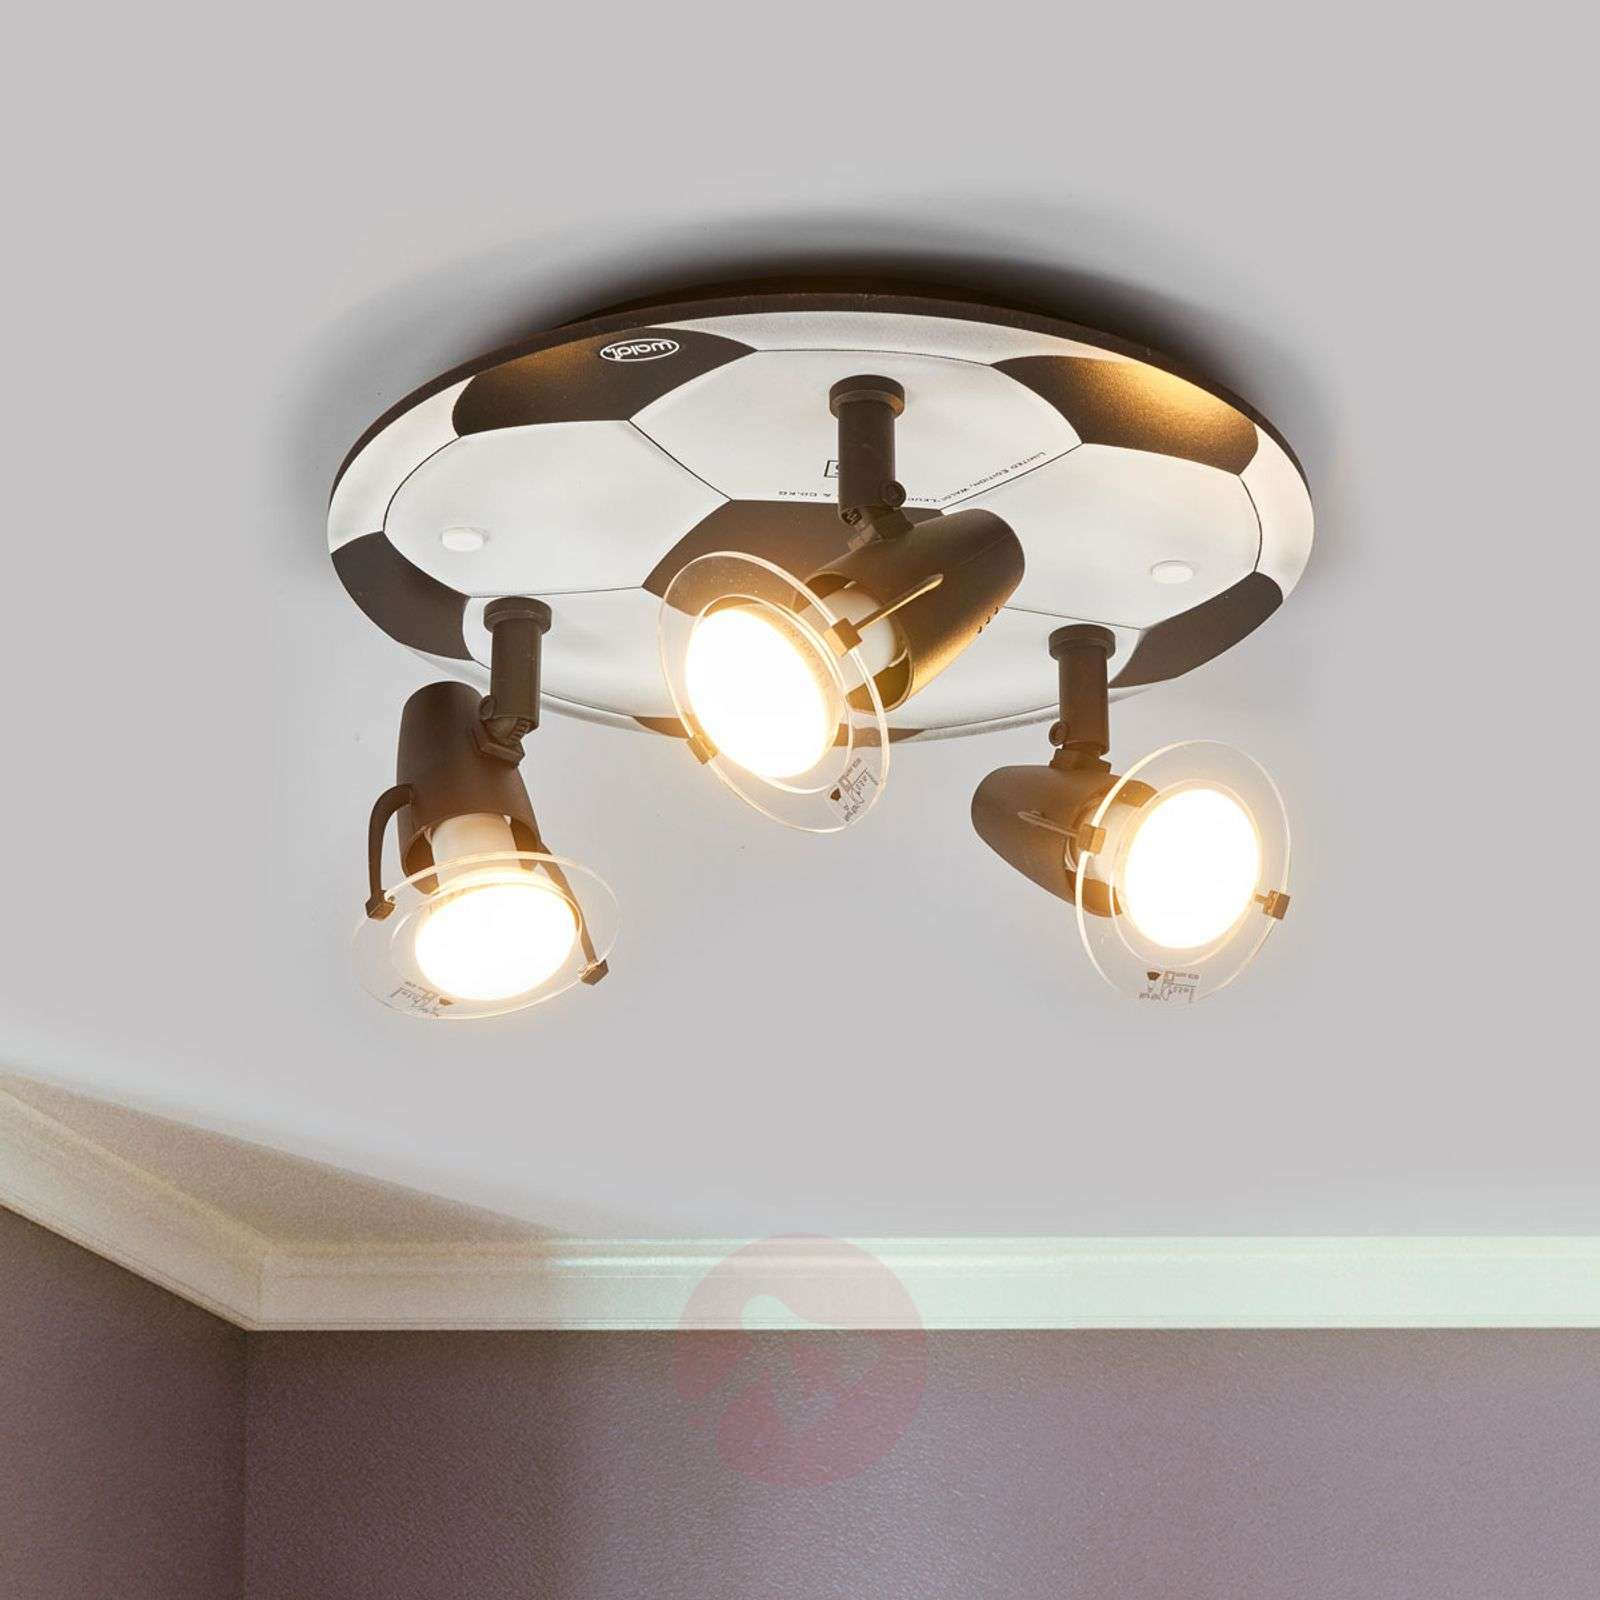 football ceiling light with 3 bulbs. Black Bedroom Furniture Sets. Home Design Ideas